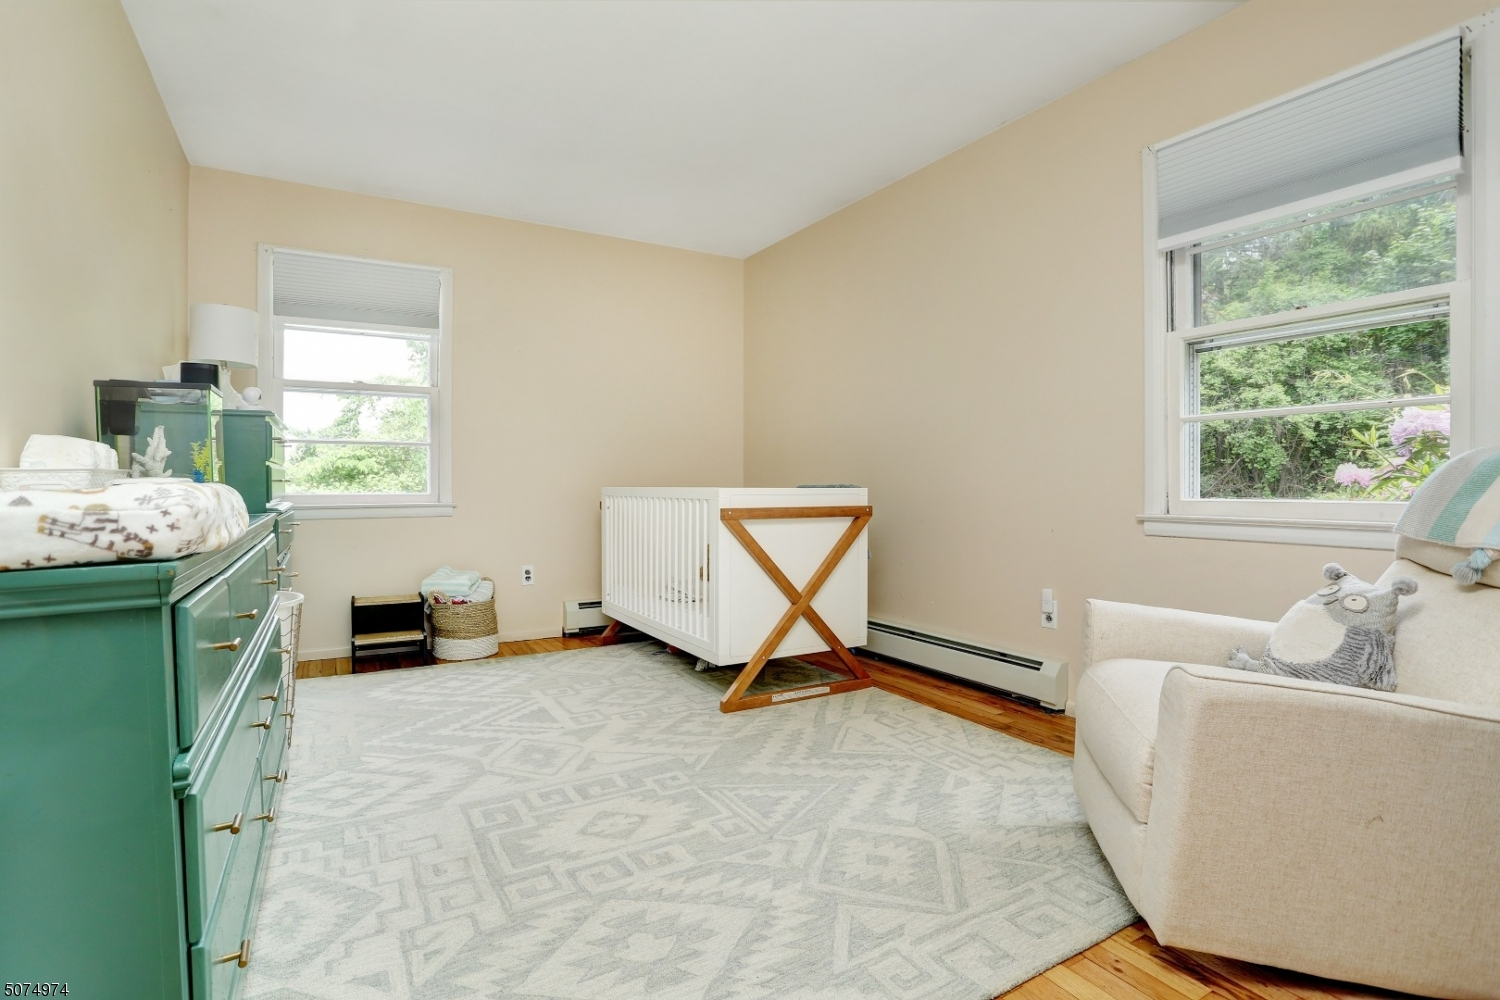 Two double-hung windows with newly refinished hardwood floors throughout the room.